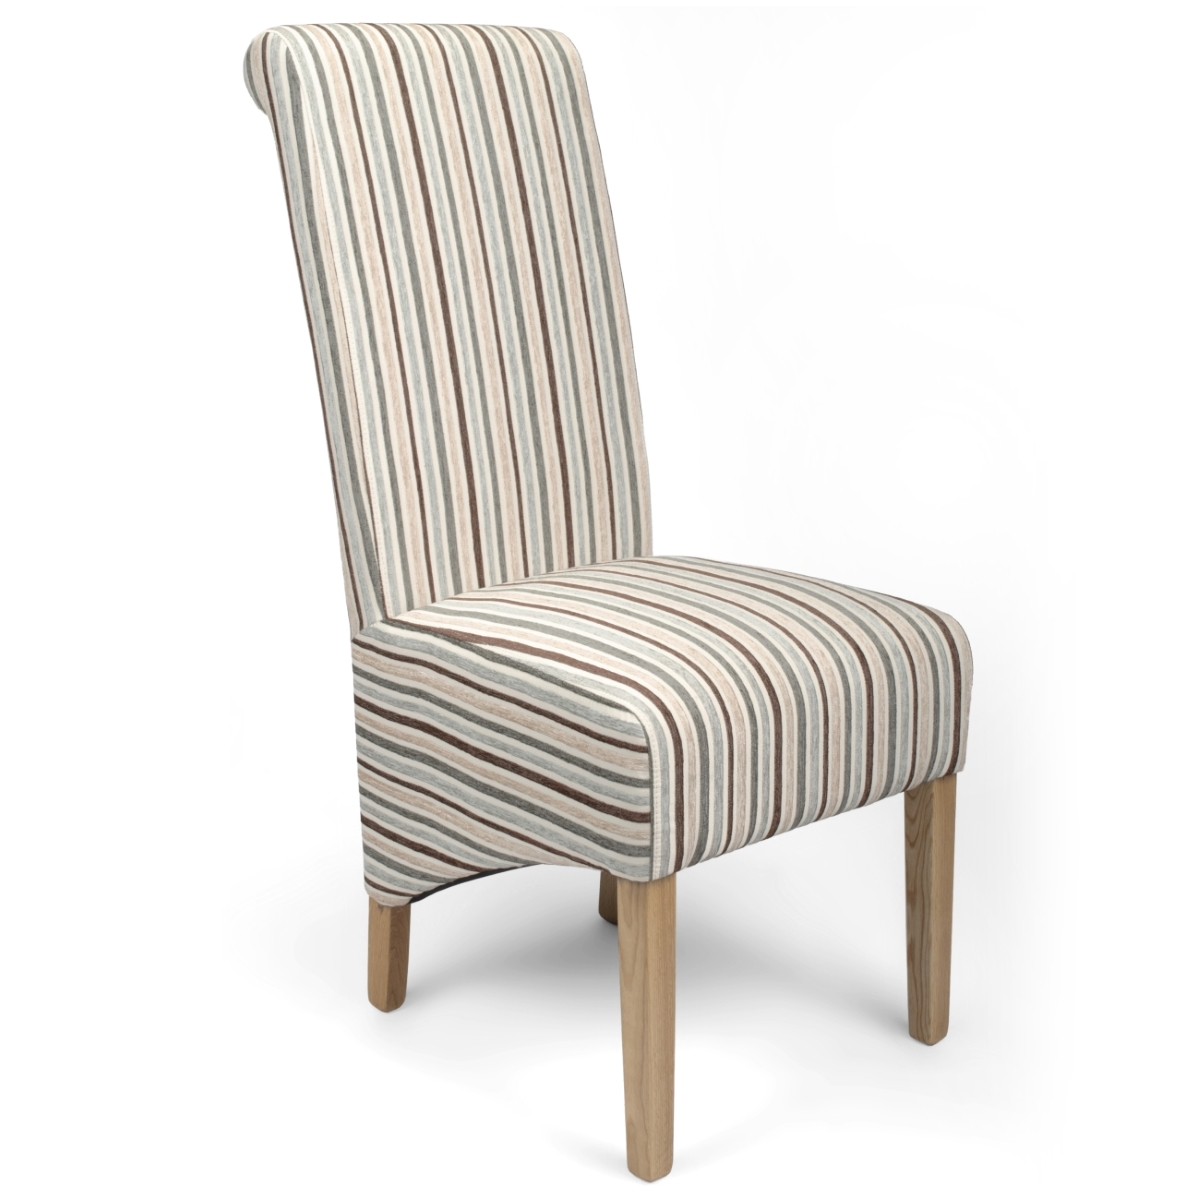 Duck Egg Blue Chair Dining Chairs Krista Stripe Dining Chairs In Duck Egg Blue